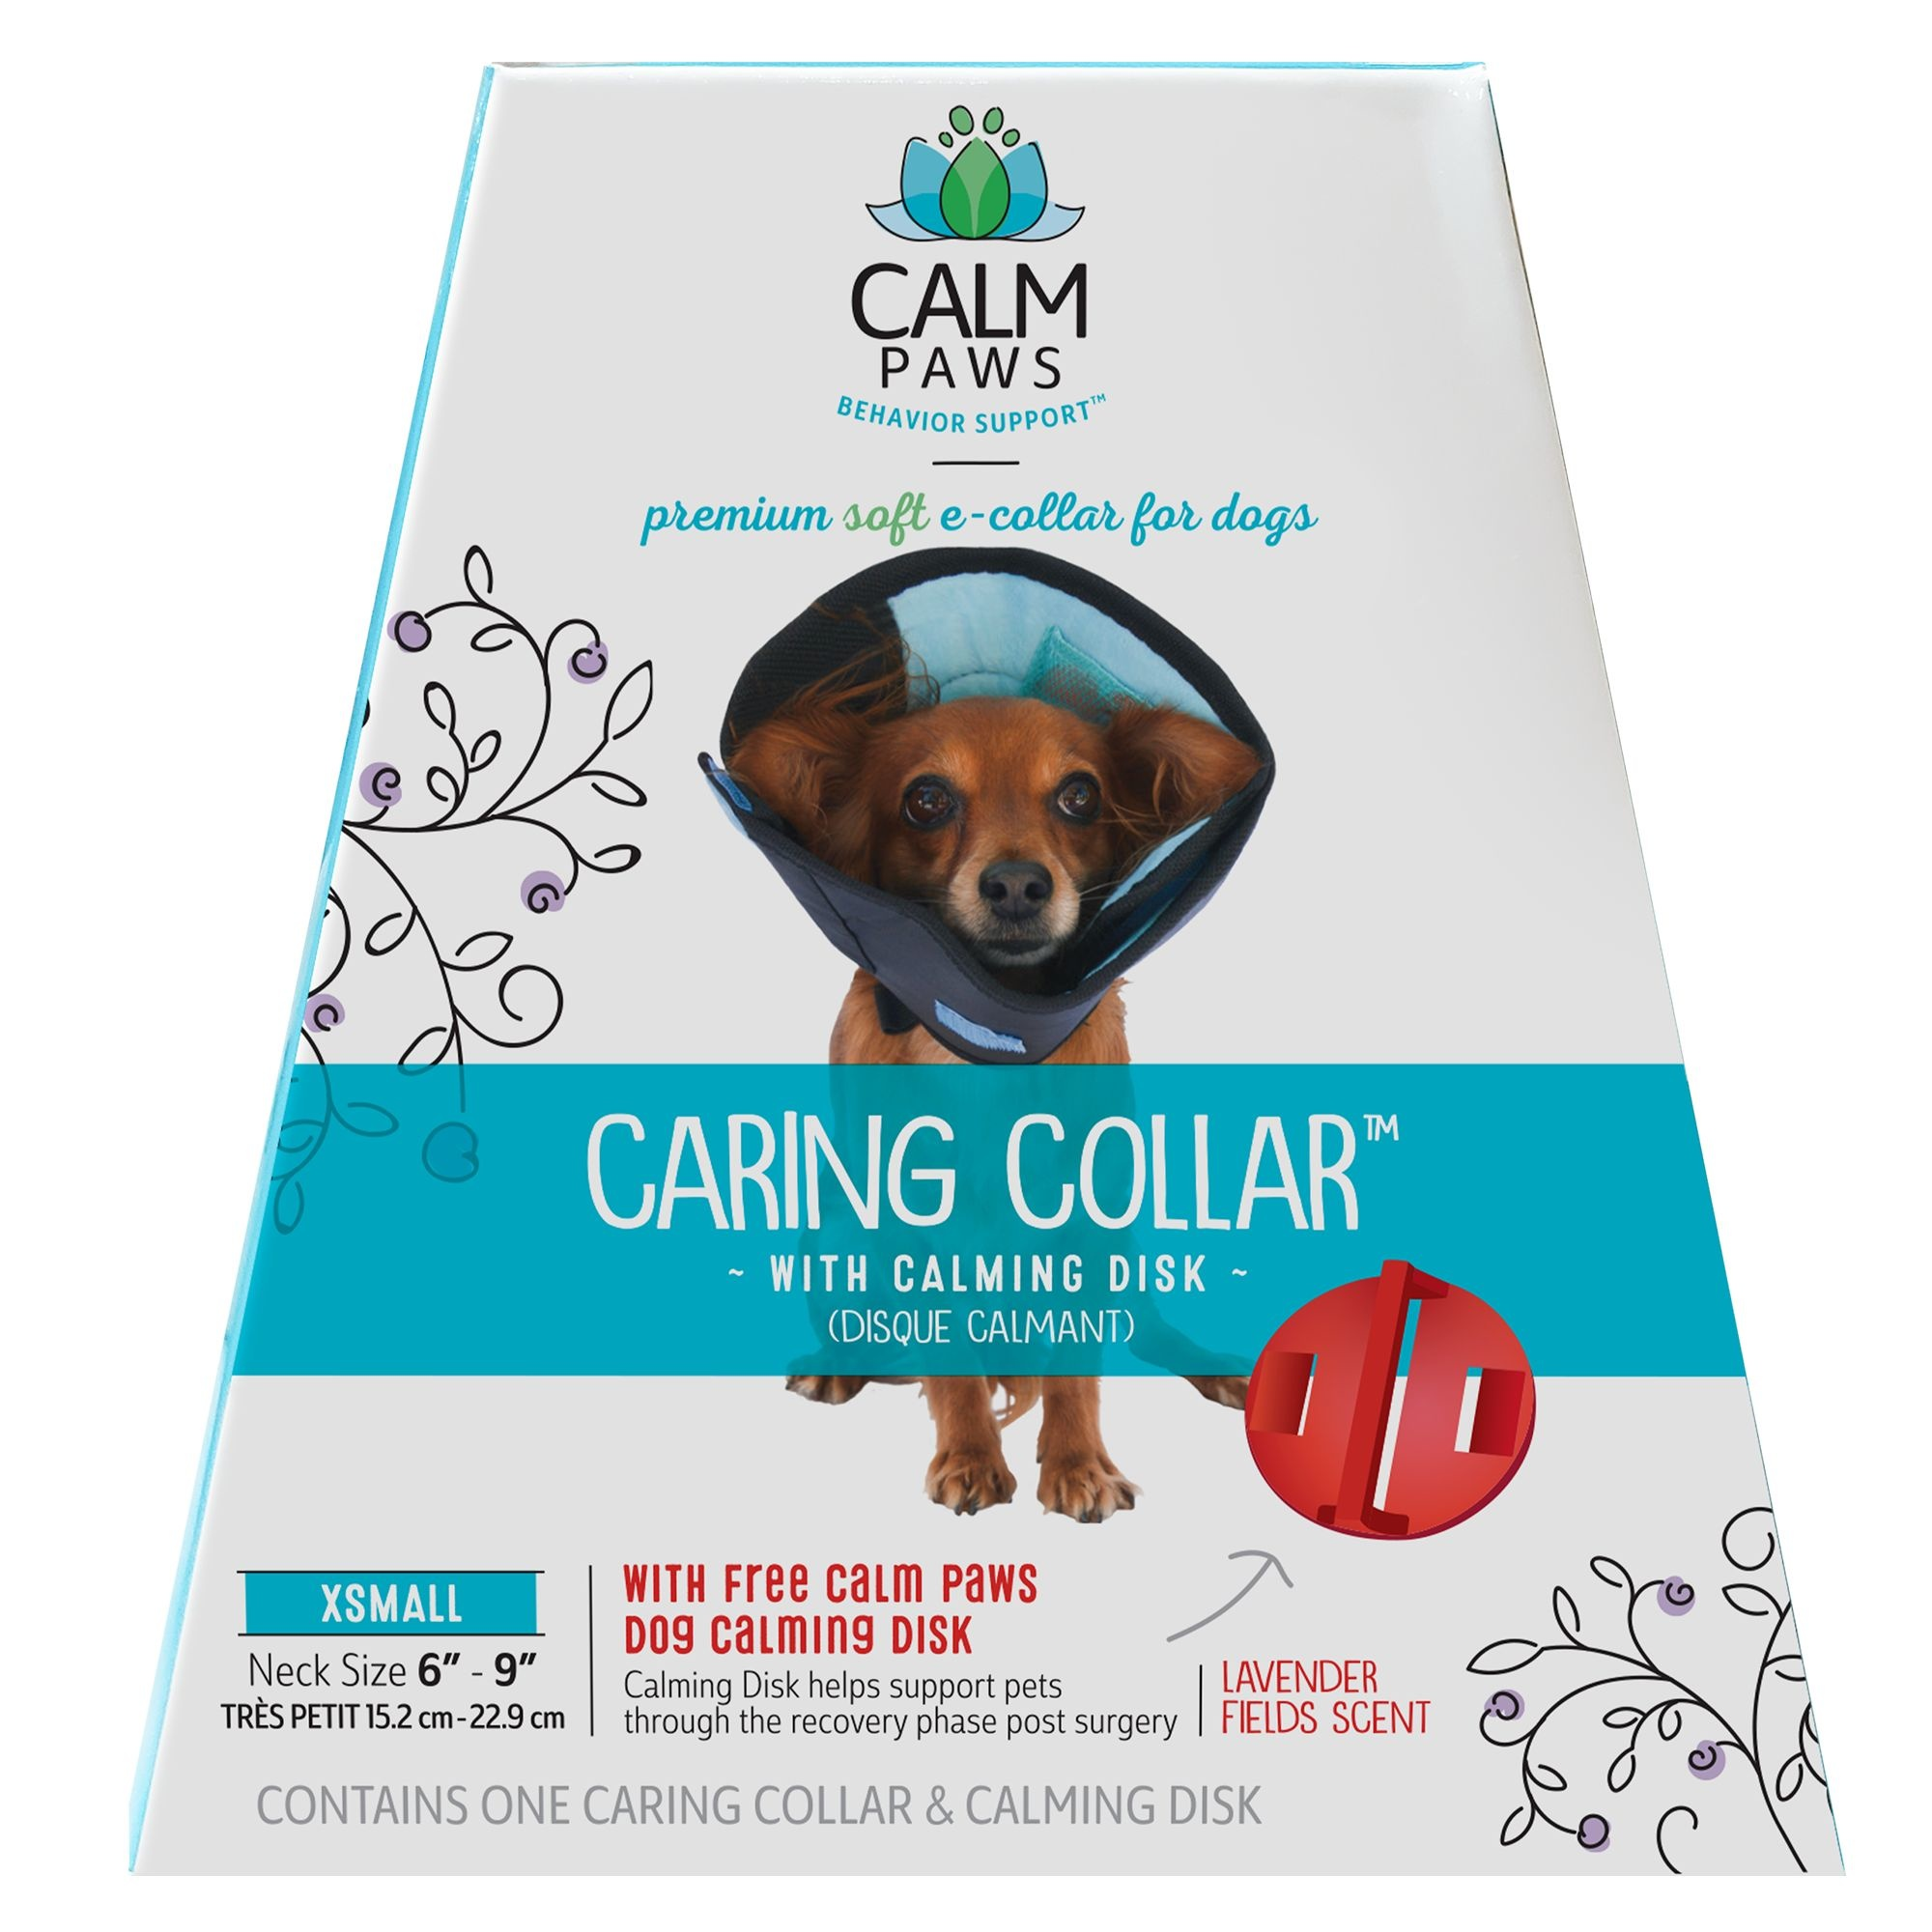 21st Centry Animal Health Care Calm Paws Caring Collar with Calming Disk